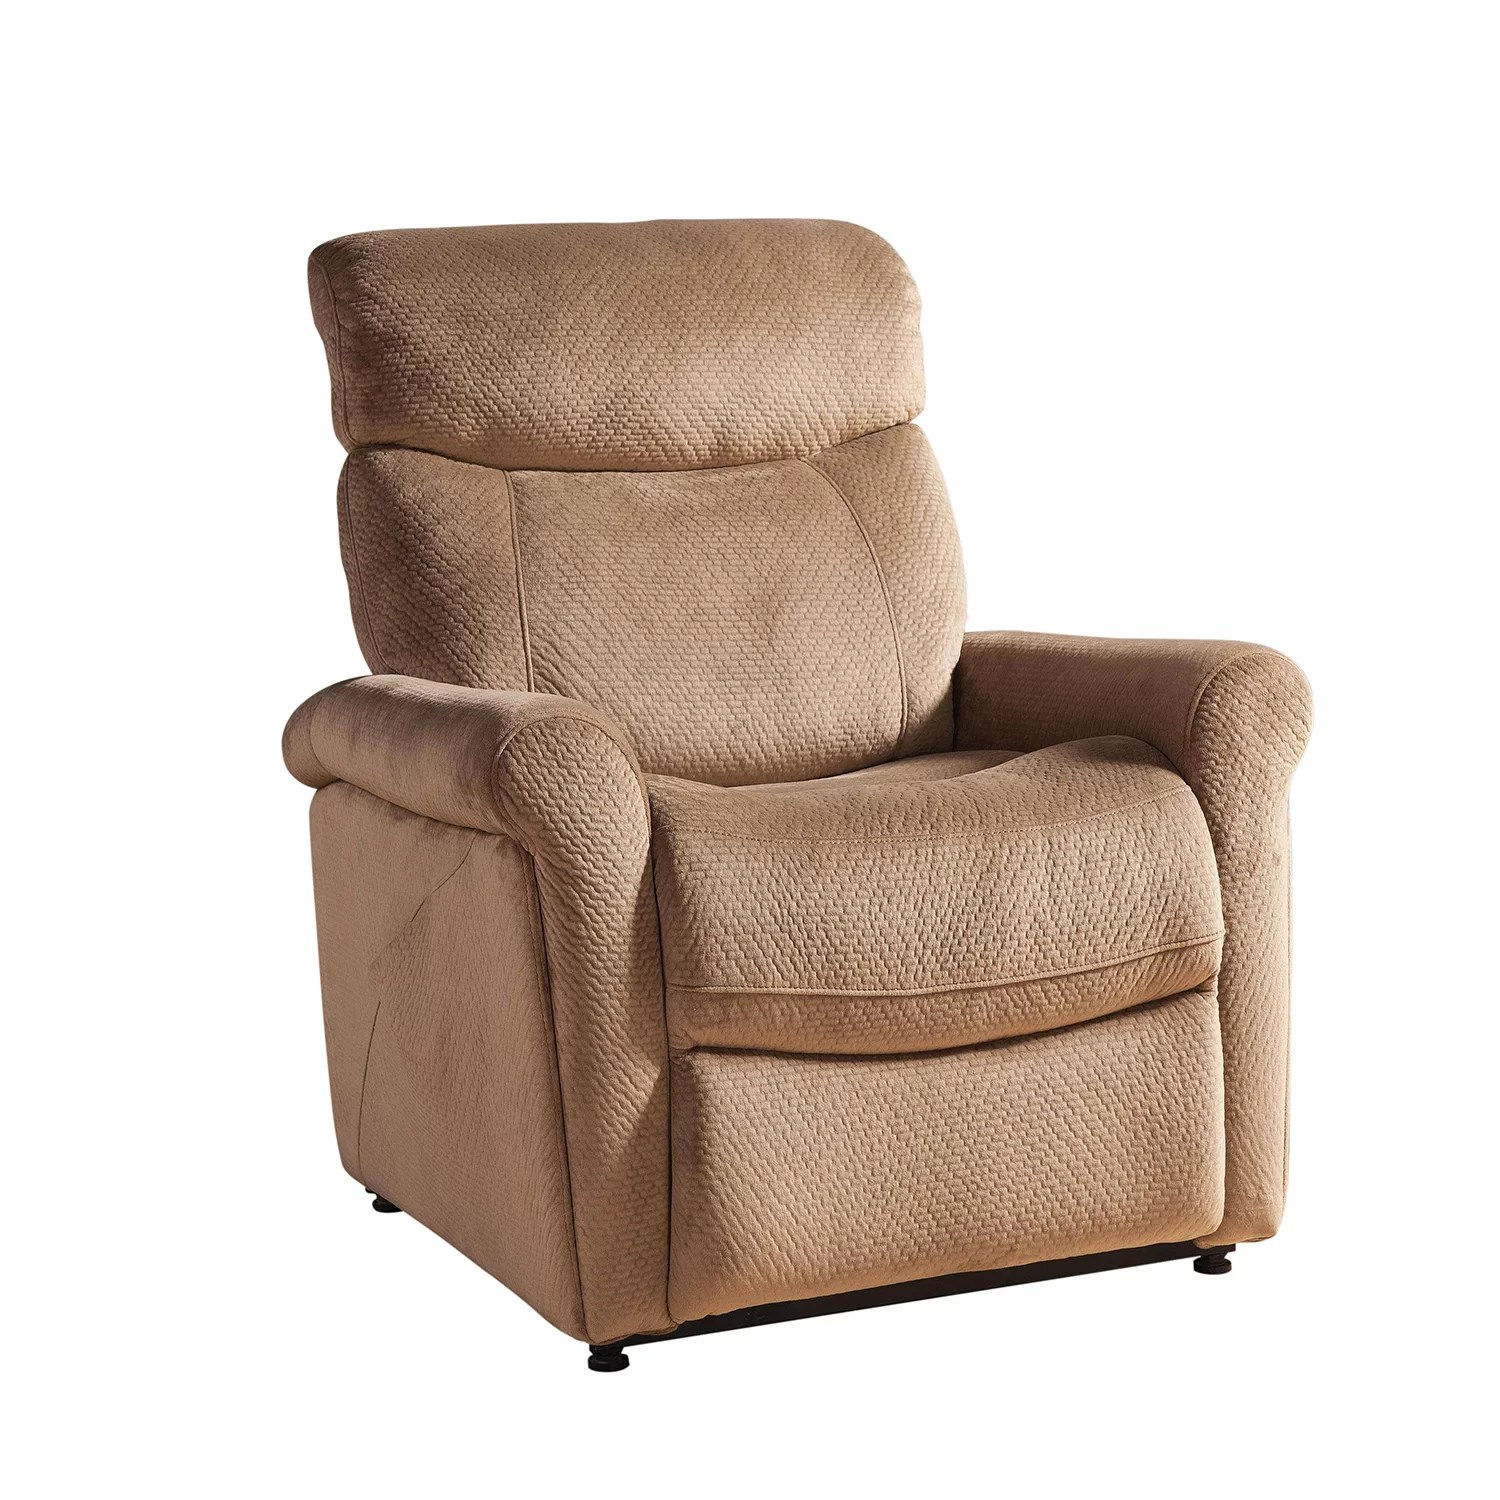 AC Pacific Seat Assists Reclining Lift Chair  Reviews